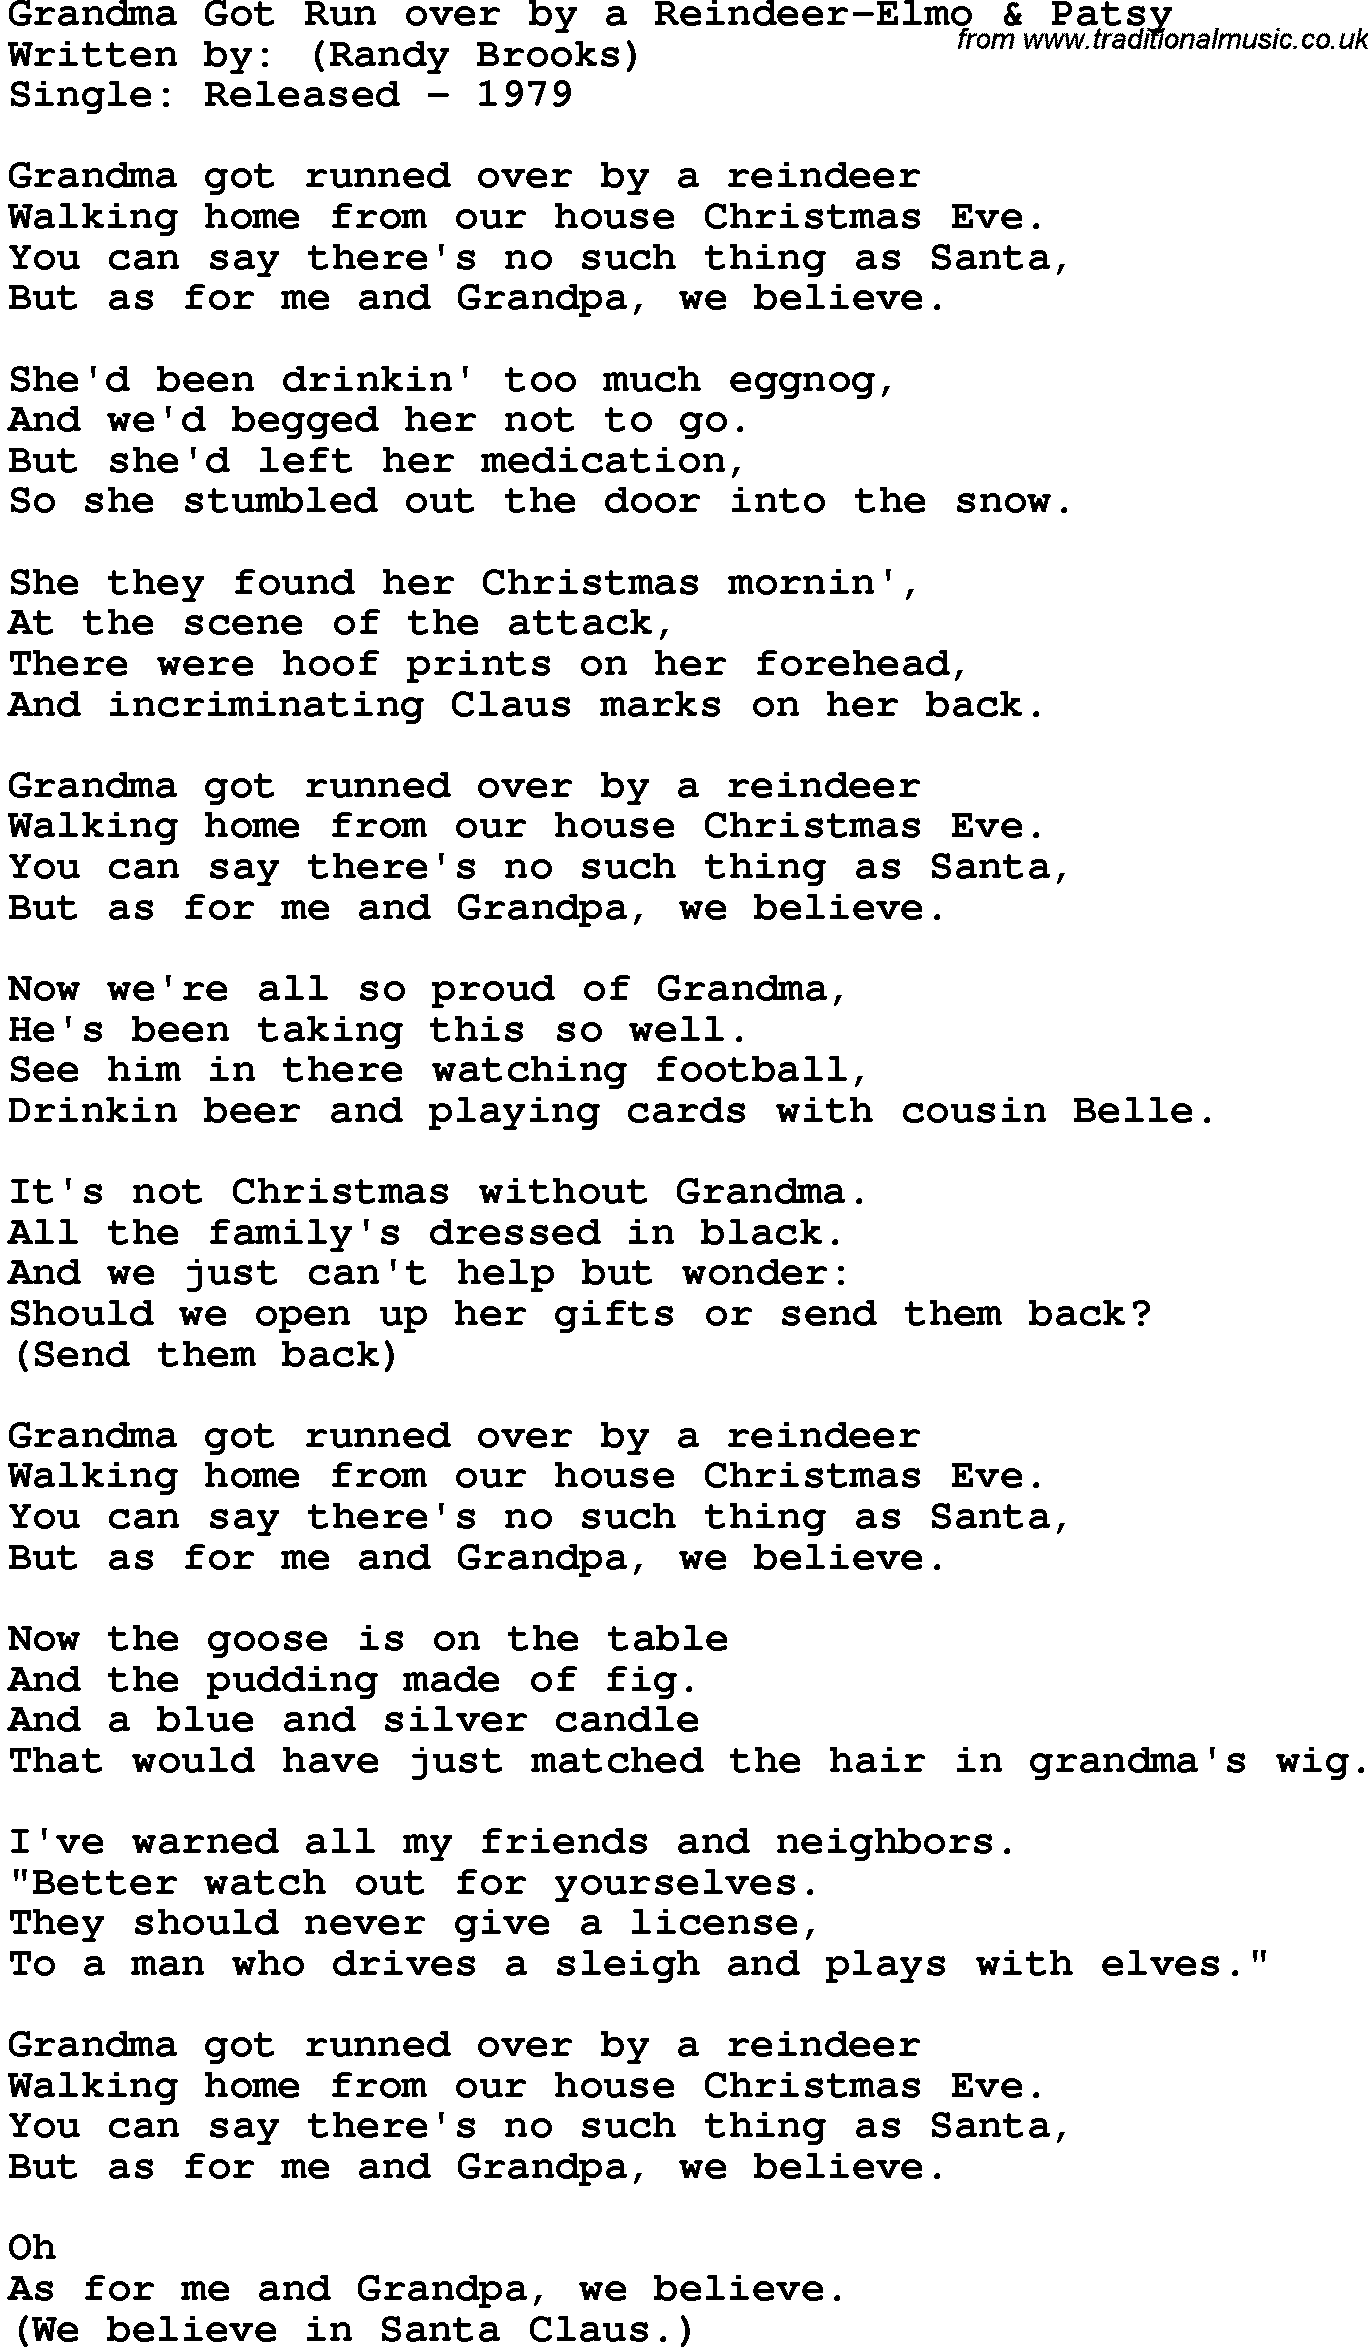 Novelty Song Grandma Got Run Over By A Reindeer Elmo Patsy lyrics